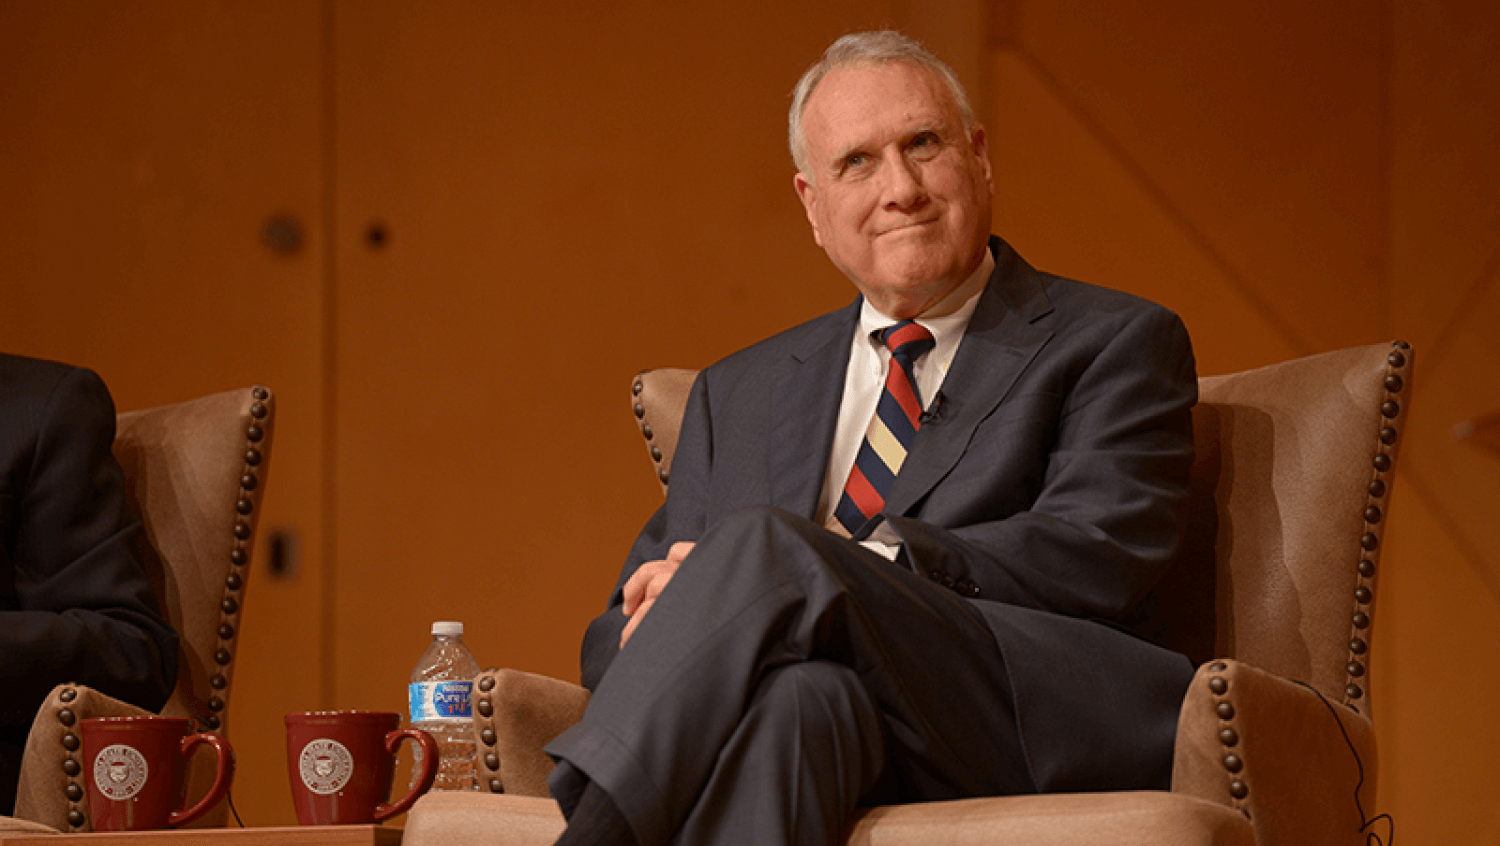 Senator Jon Kyl teaching at Arizona State University